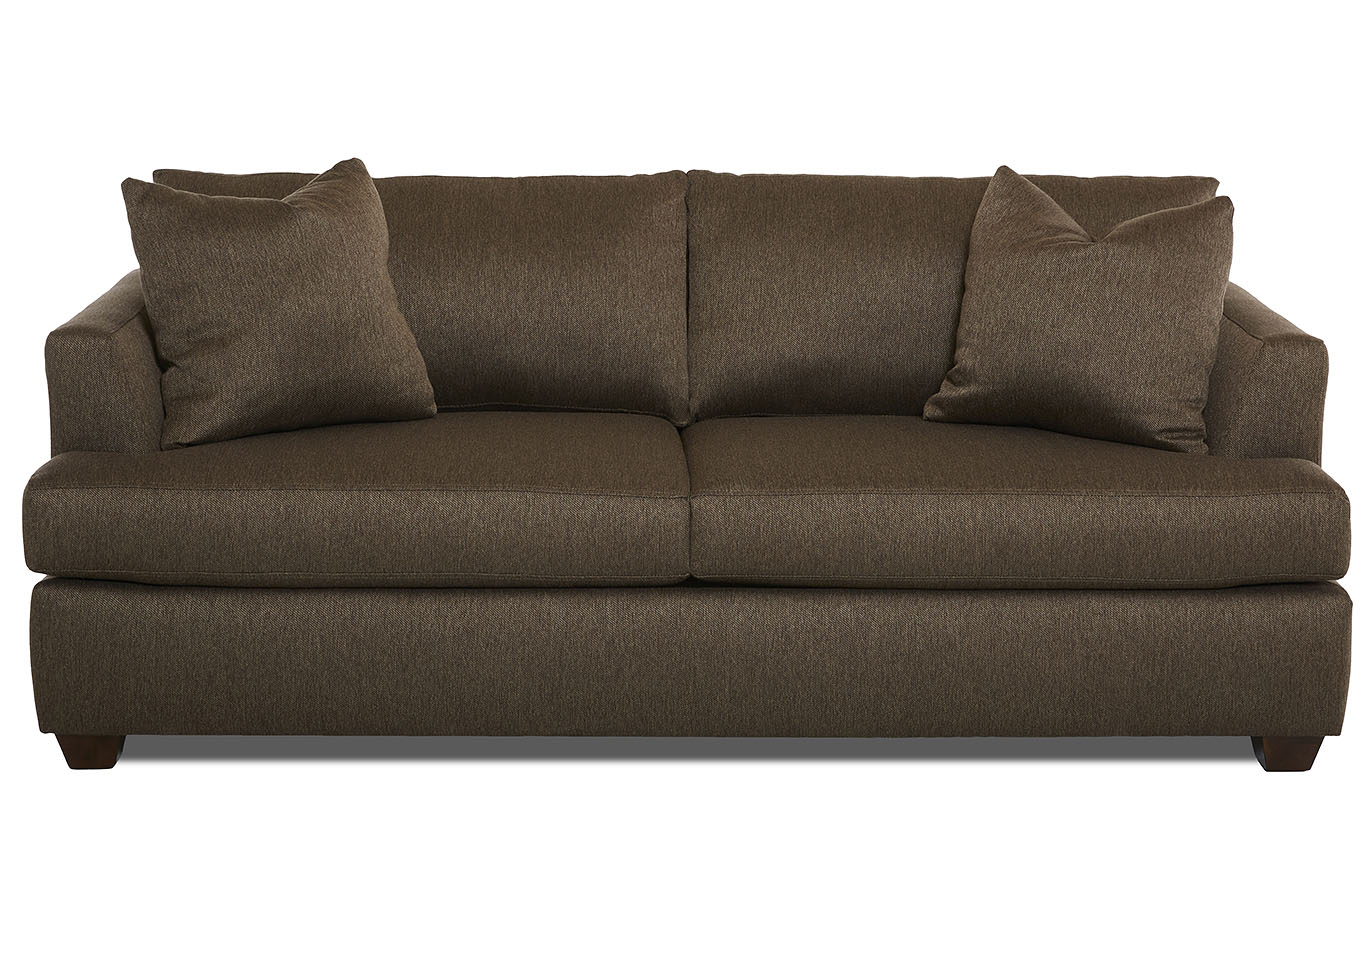 Jack Cocoa Stationary Fabric Sofa,Klaussner Home Furnishings